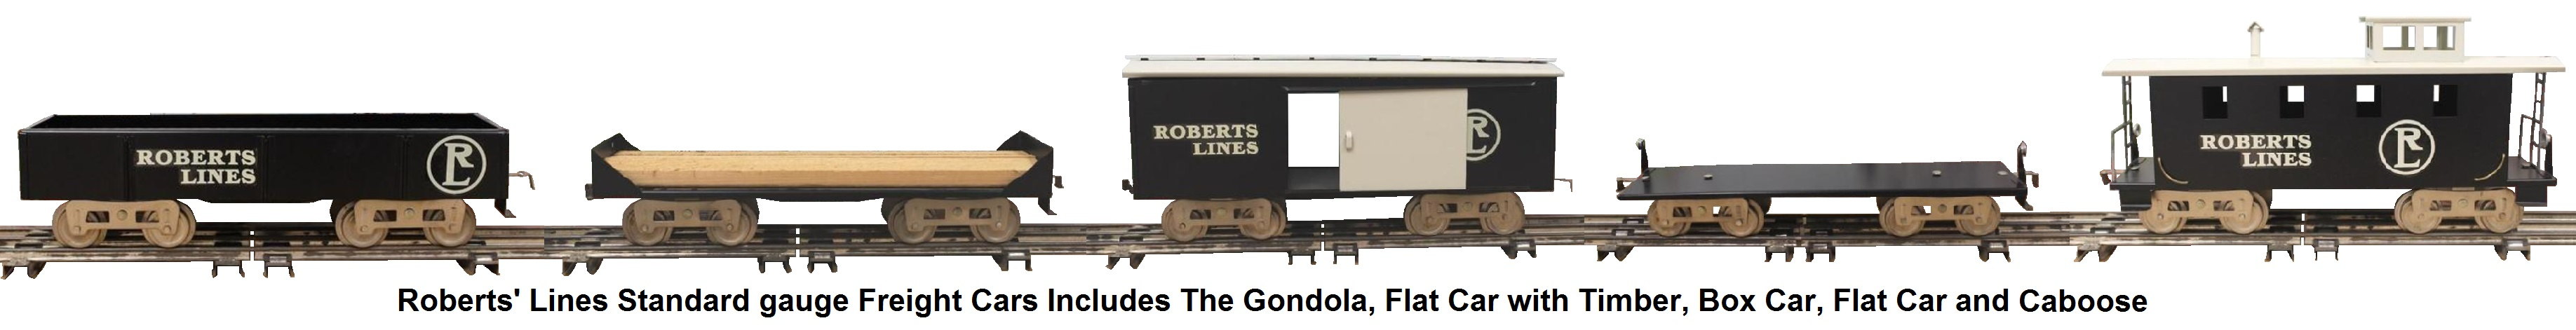 Roberts' Lines Standard gauge Freight cars includes Gondola, Flat Car with Timber Load, Box Car, Flat Car and Caboose